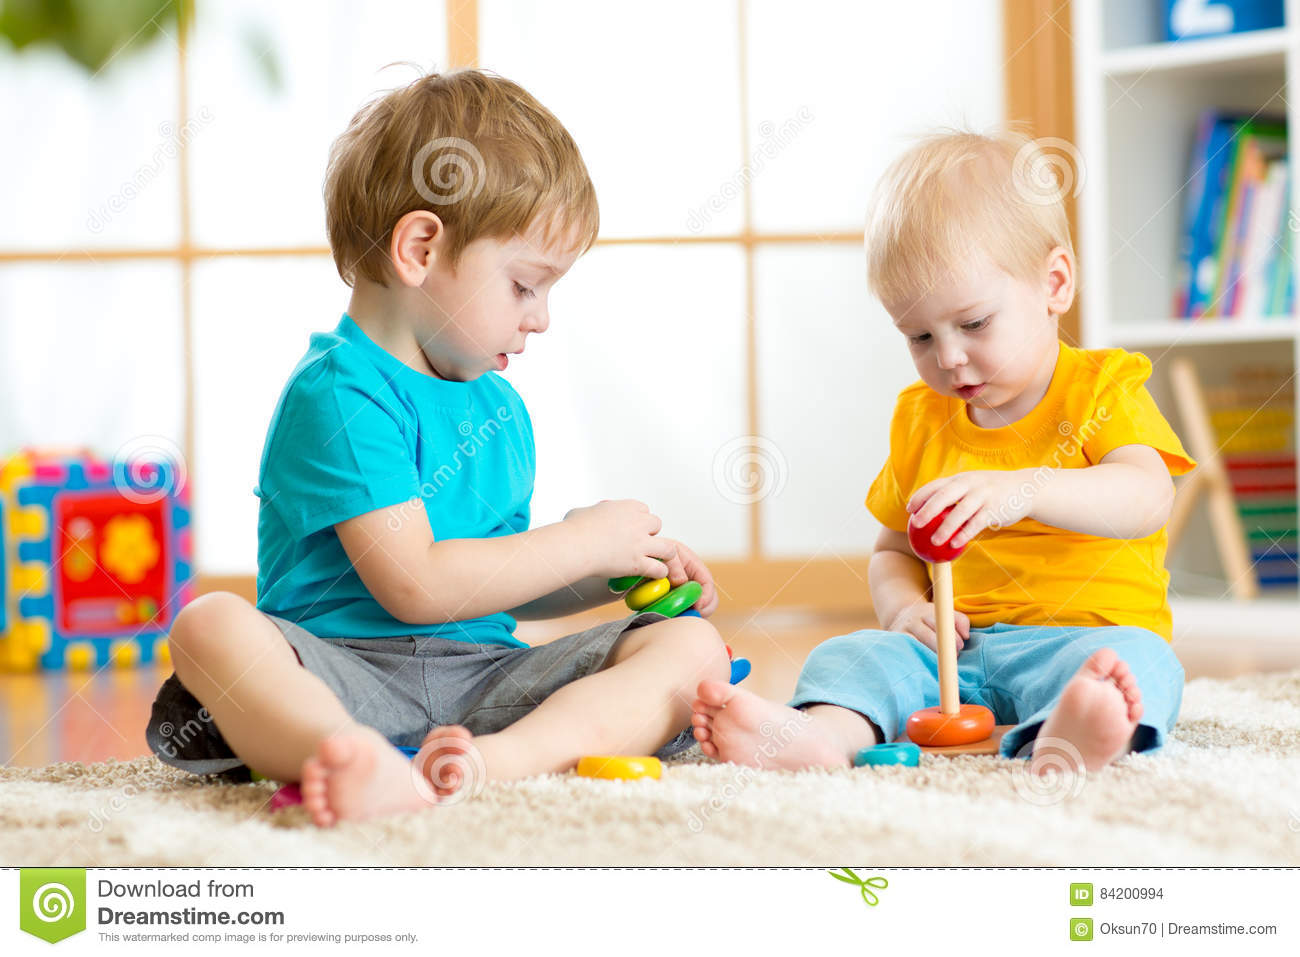 Day Care Toys For Toddler : Children play with educational toys in preschool or